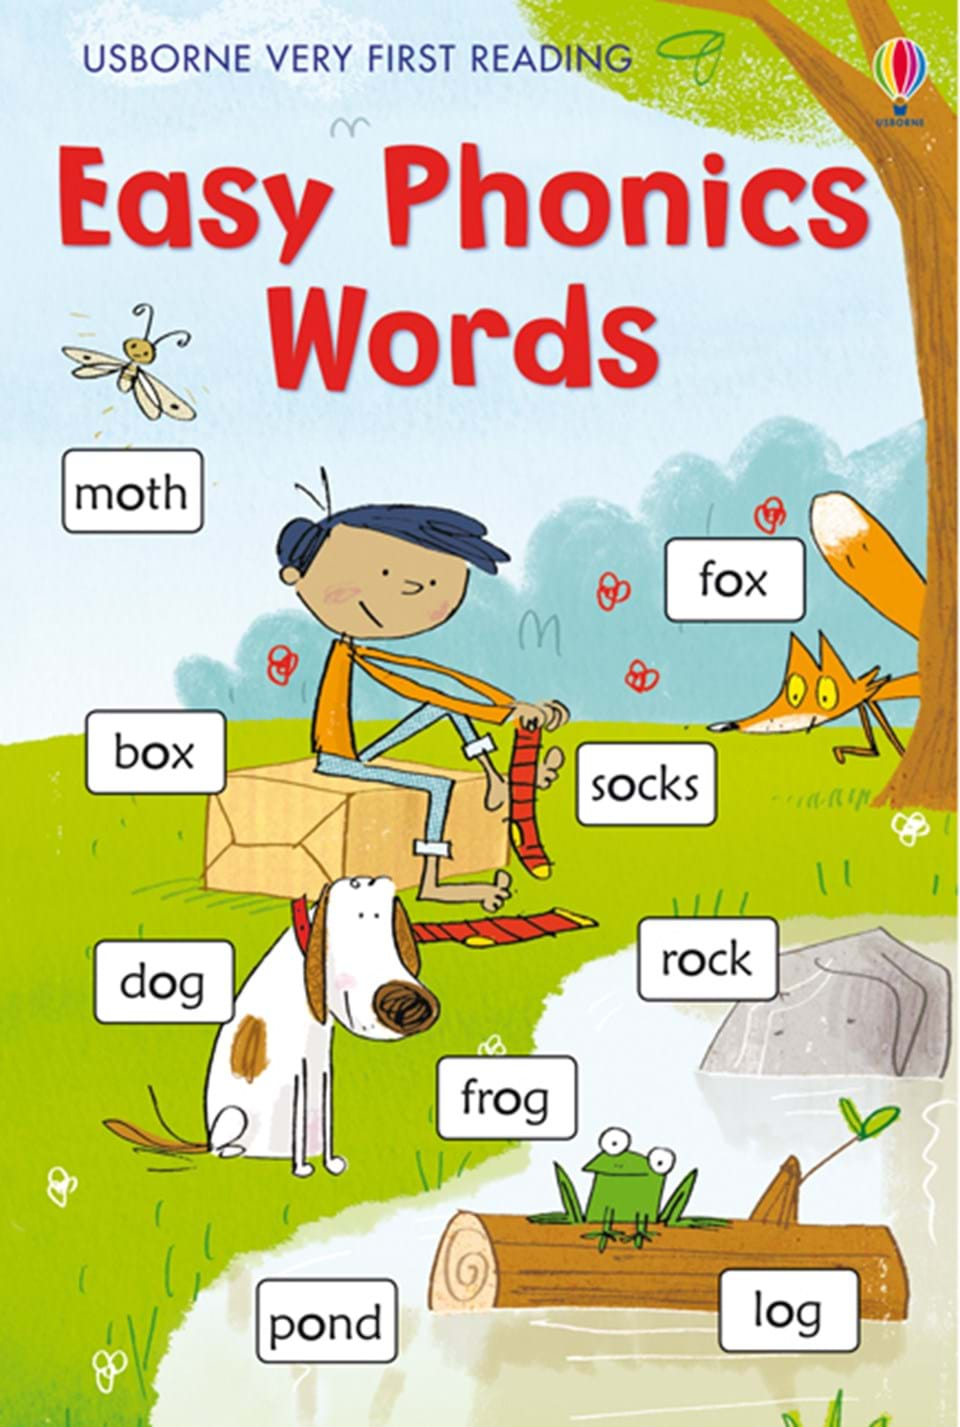 Worksheet Phonic Words very first reading easy phonics at usborne books home words